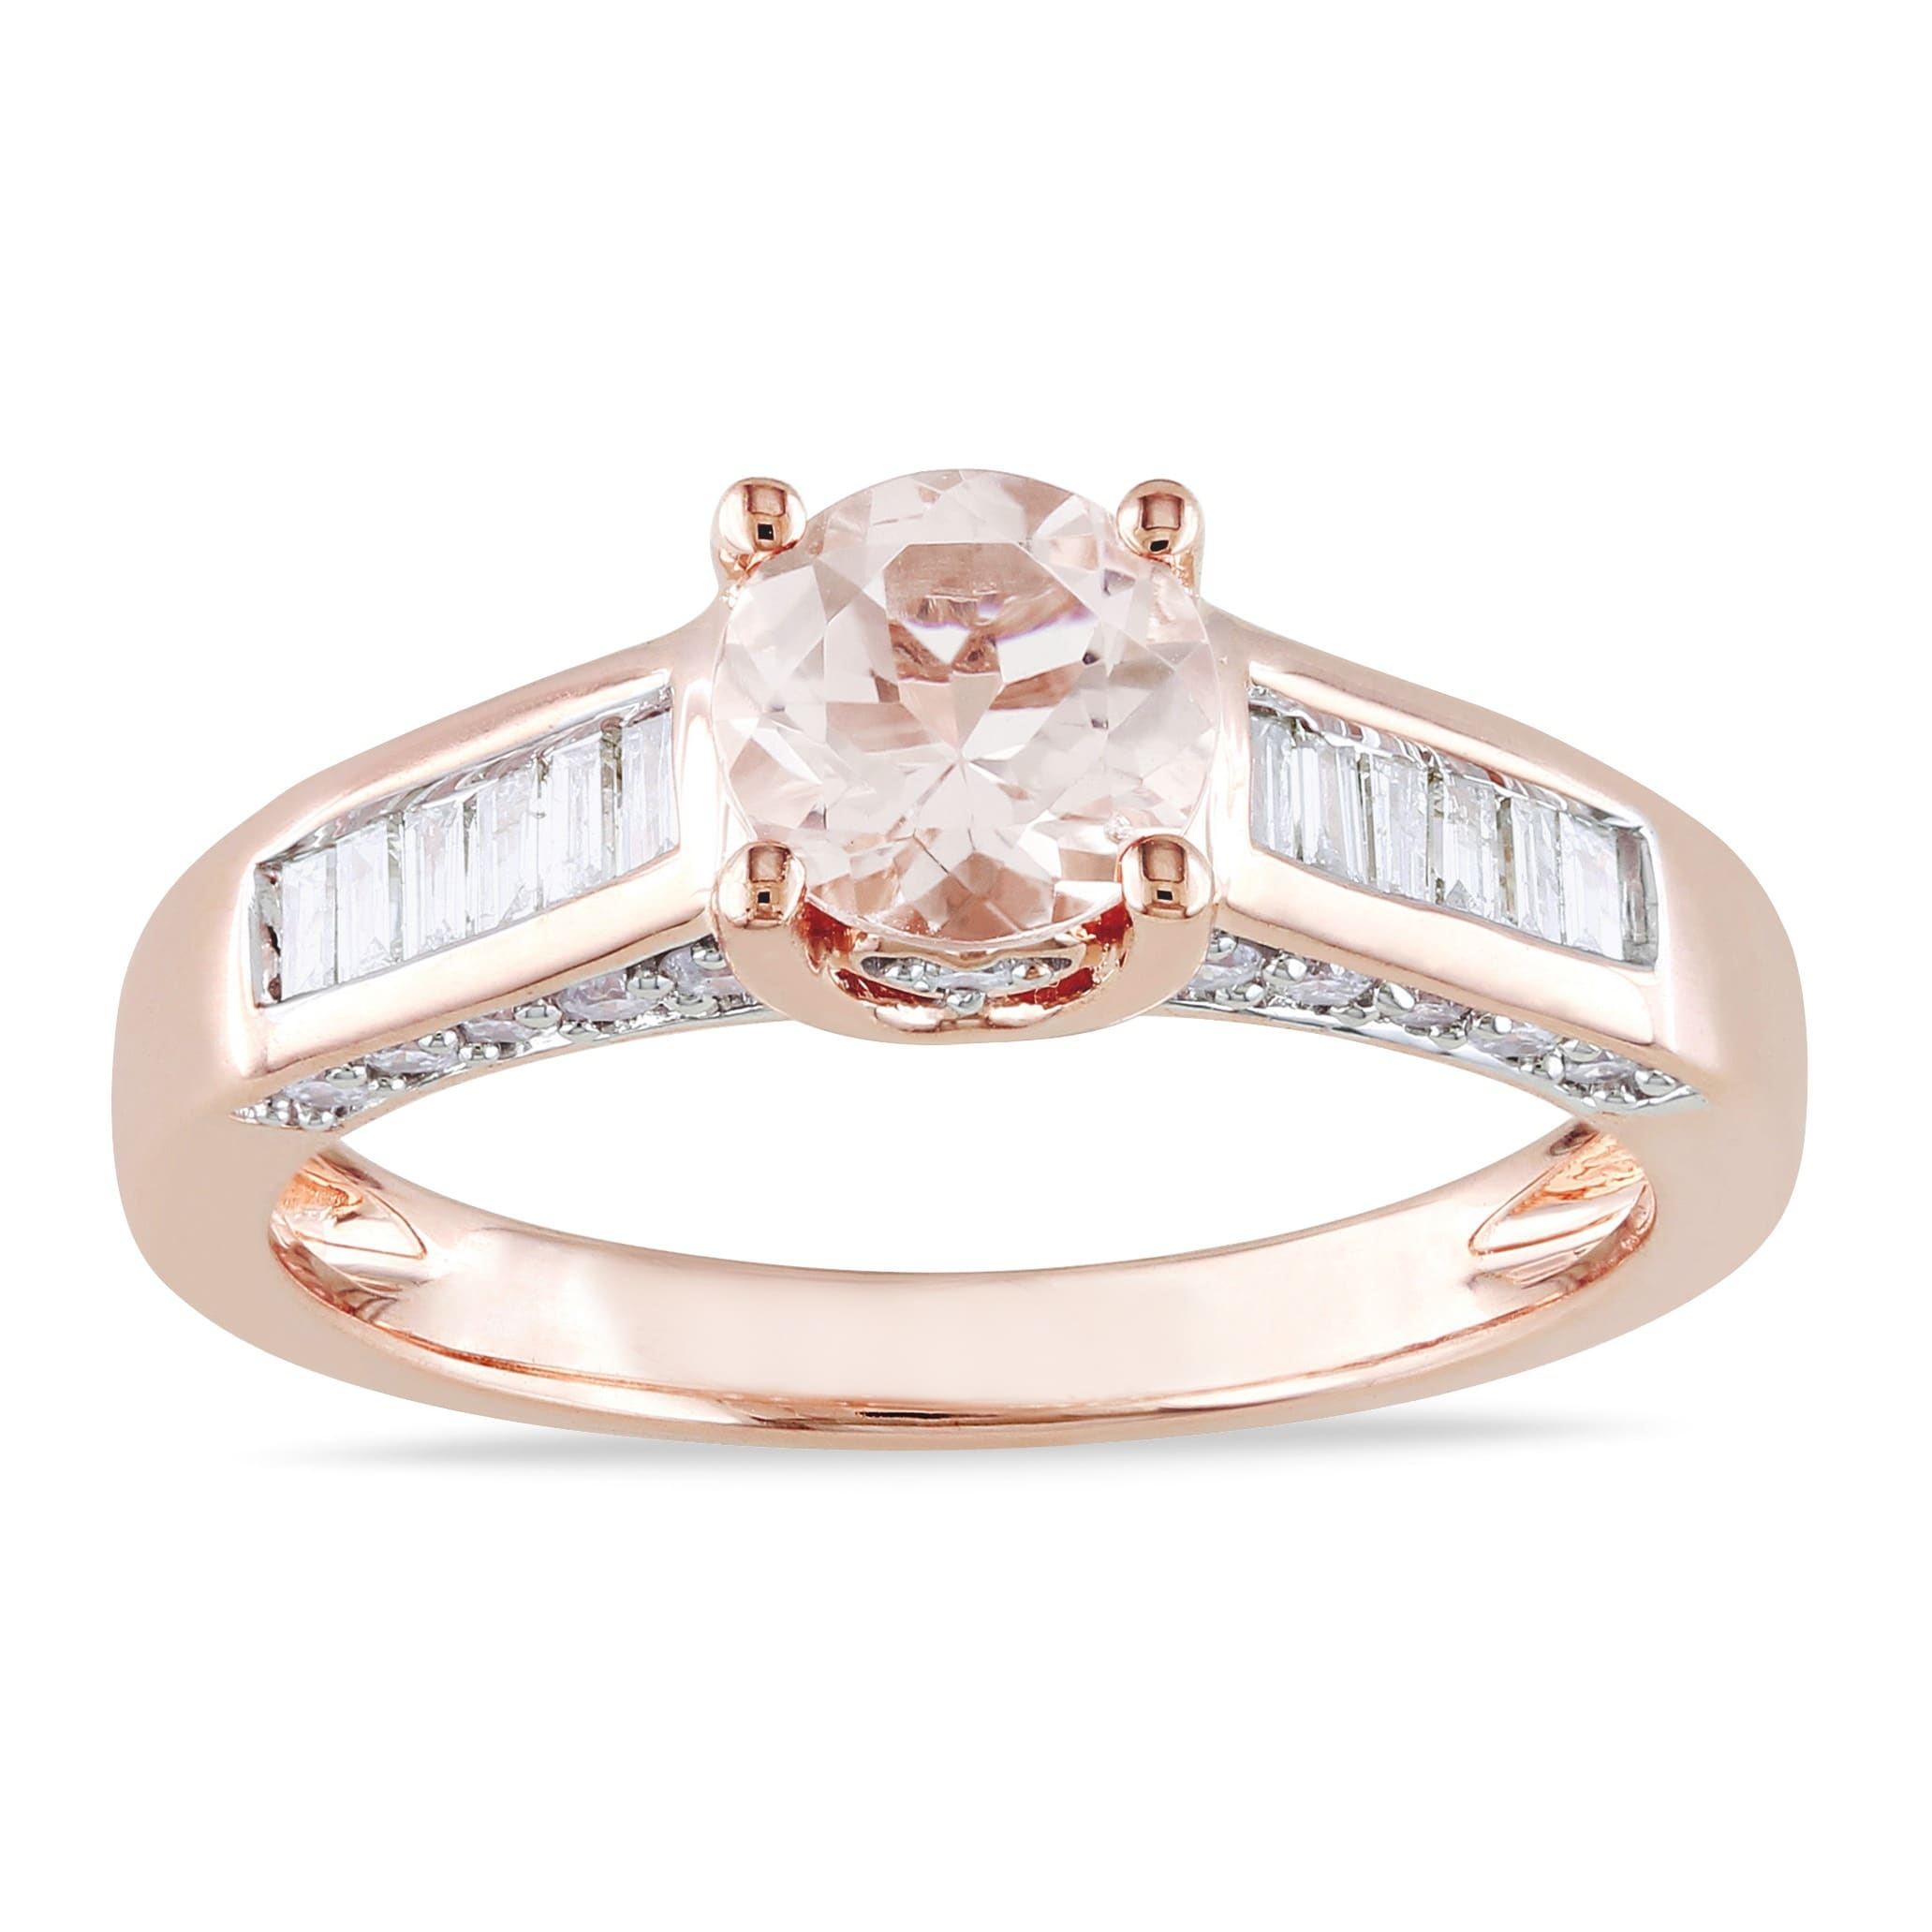 jewels pink morganite products updatedpinkmorganitering royal princess next carried ring diamond